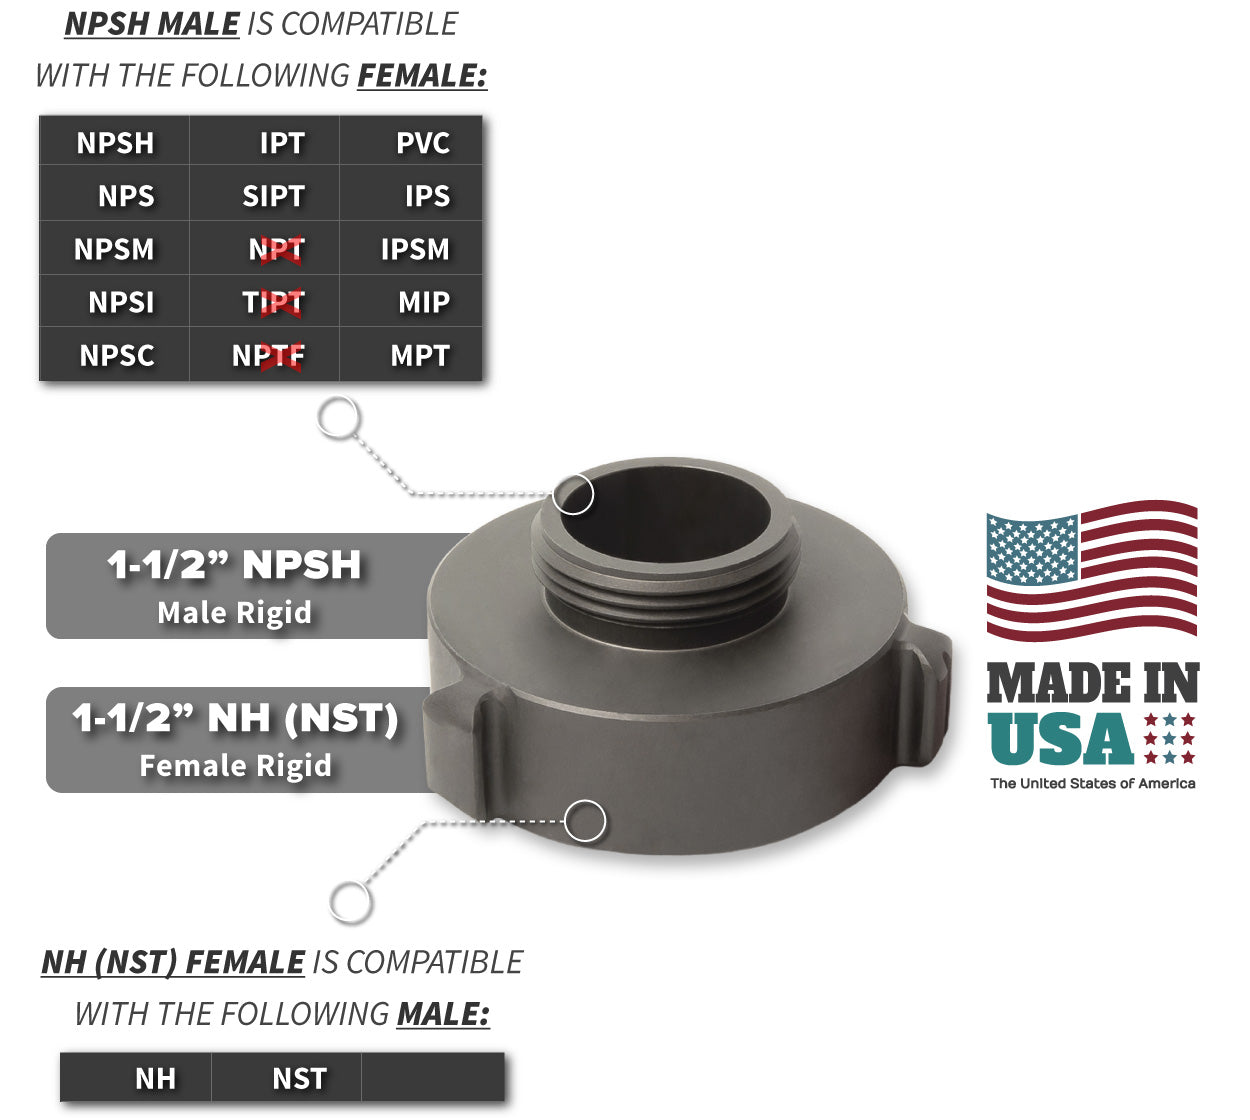 1.5 Inch NH-NST Female x 1 Inch NPSH Male Compatibility Thread Chart